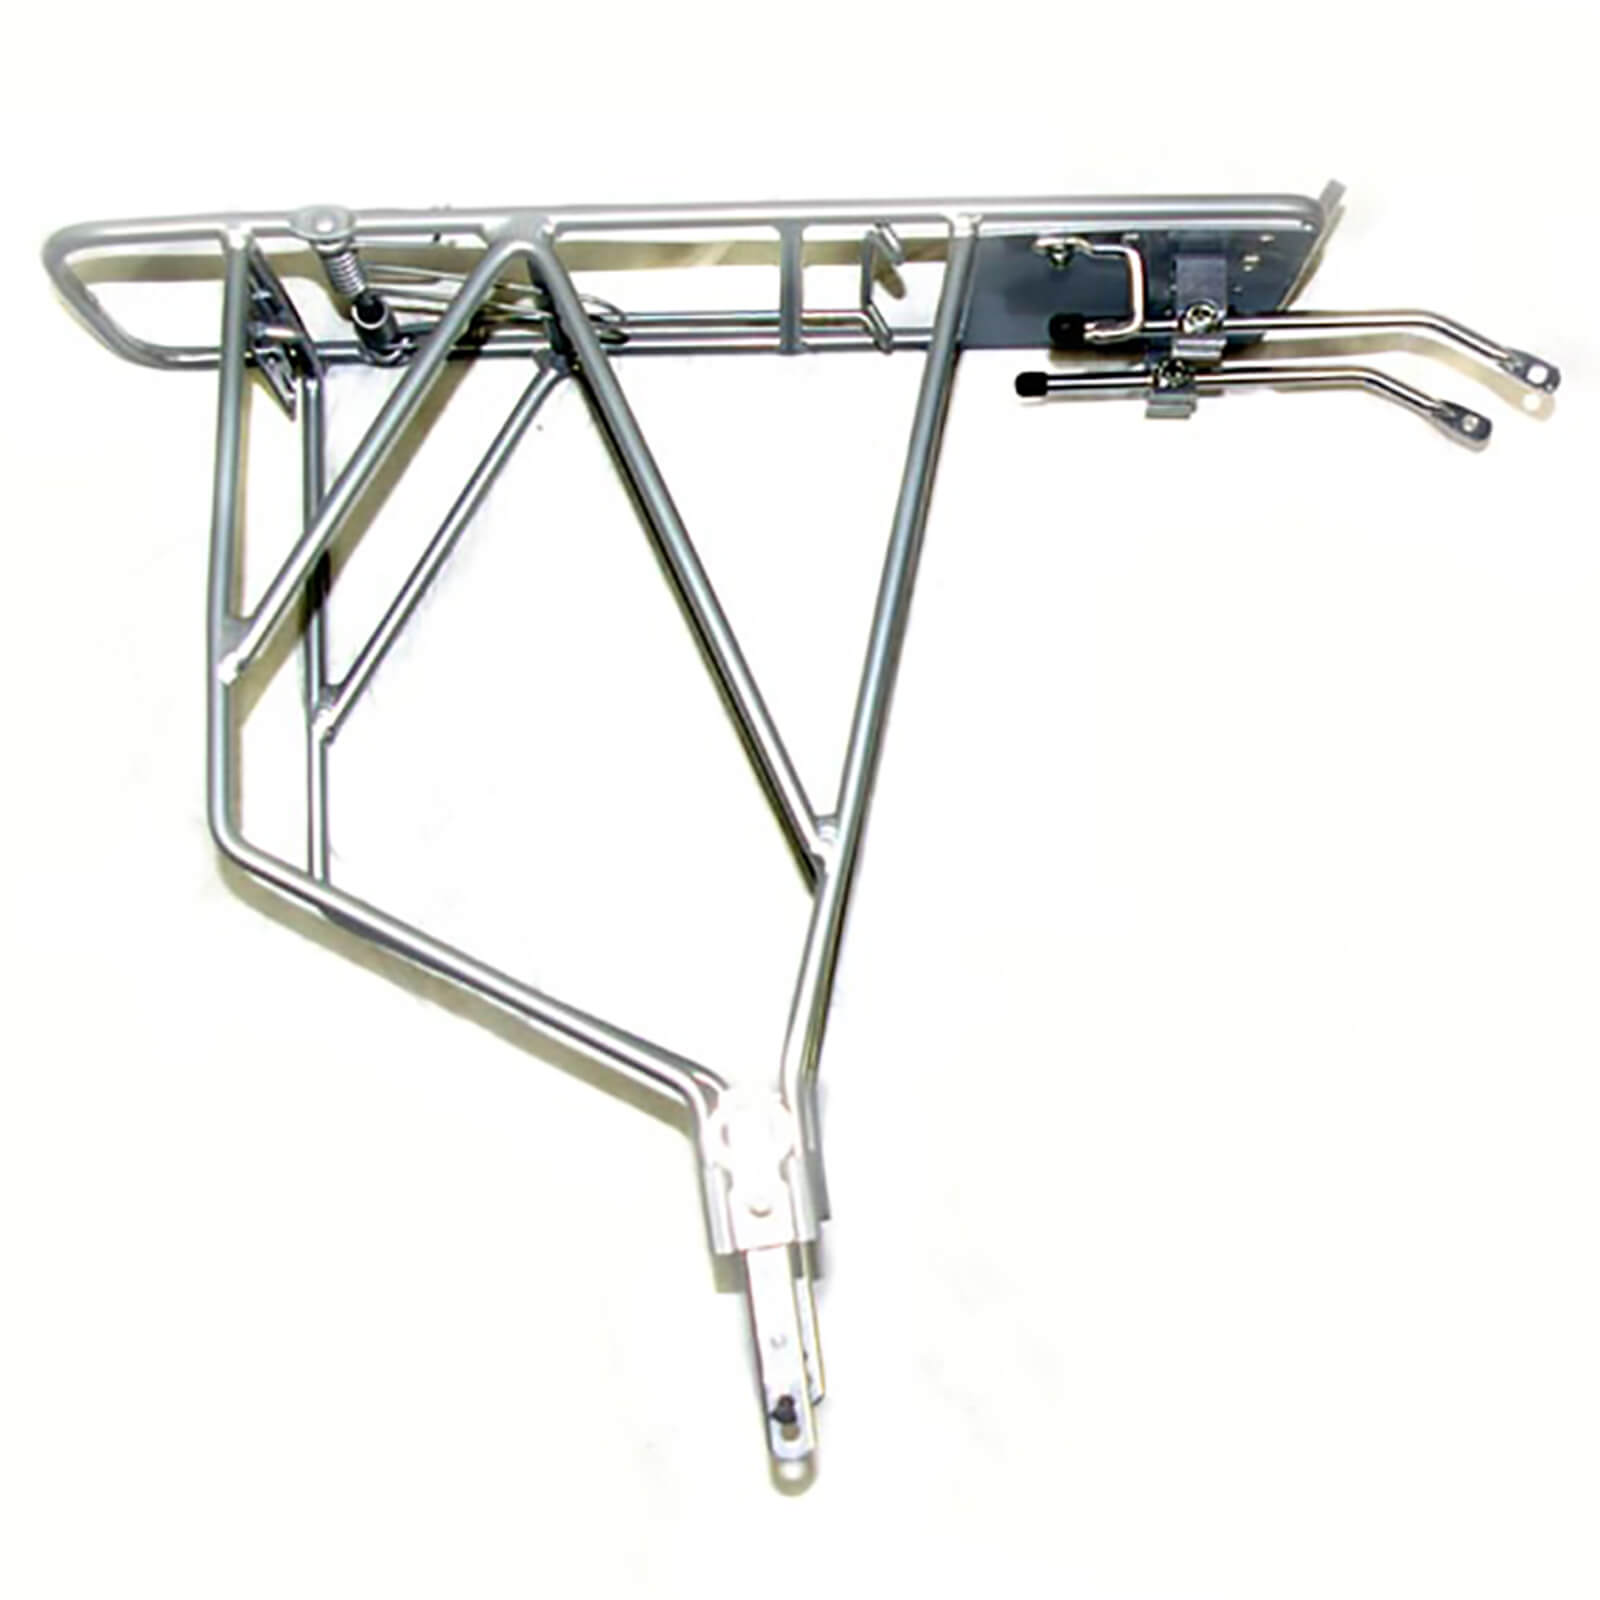 Trans-X Adjustable Silver Alloy Pannier Rack